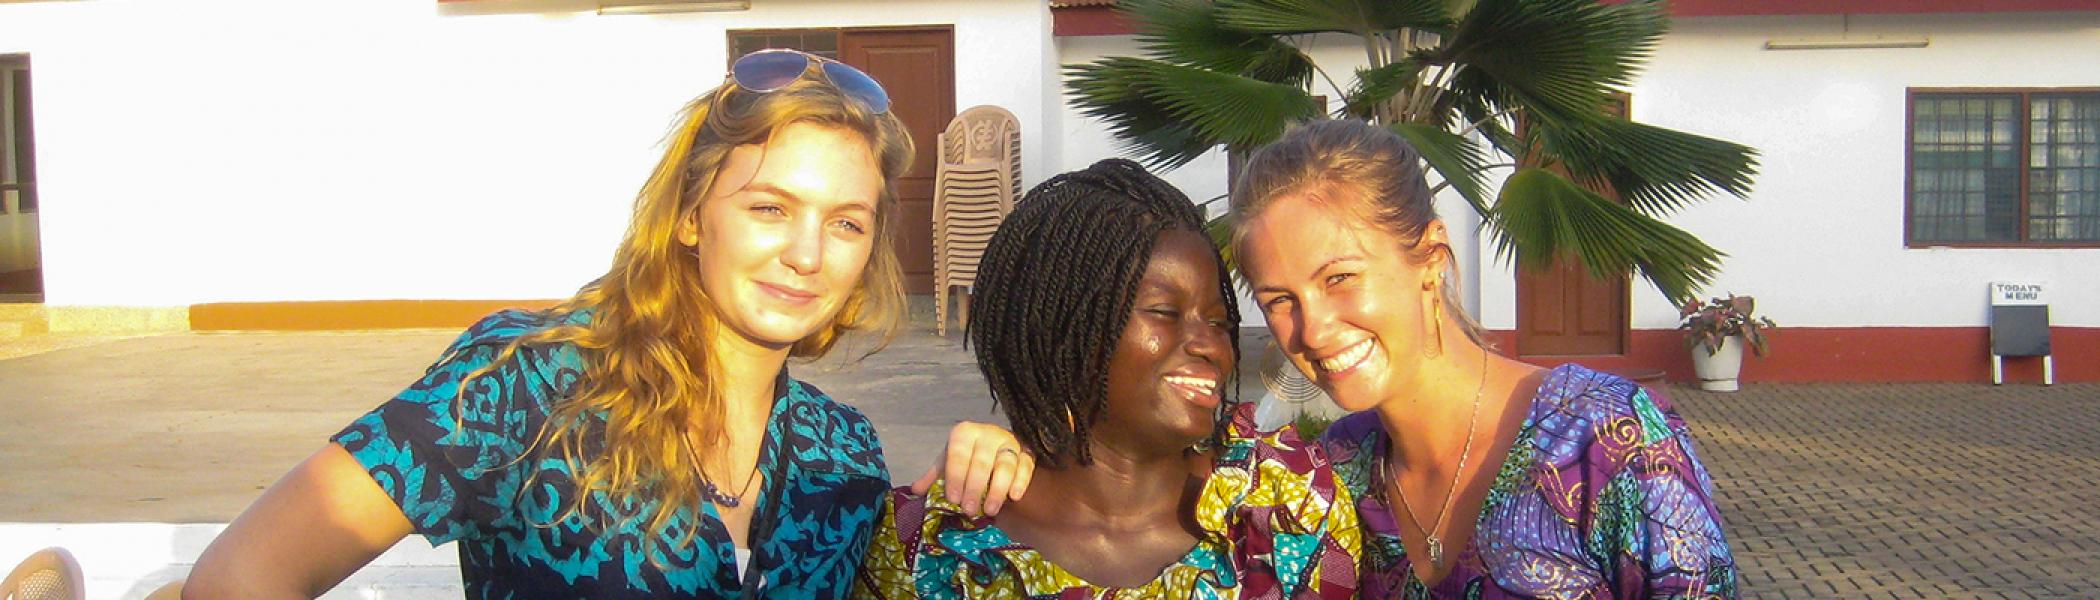 3 International Development Studies students smiling at the camera, in a Ghana yard in the sun